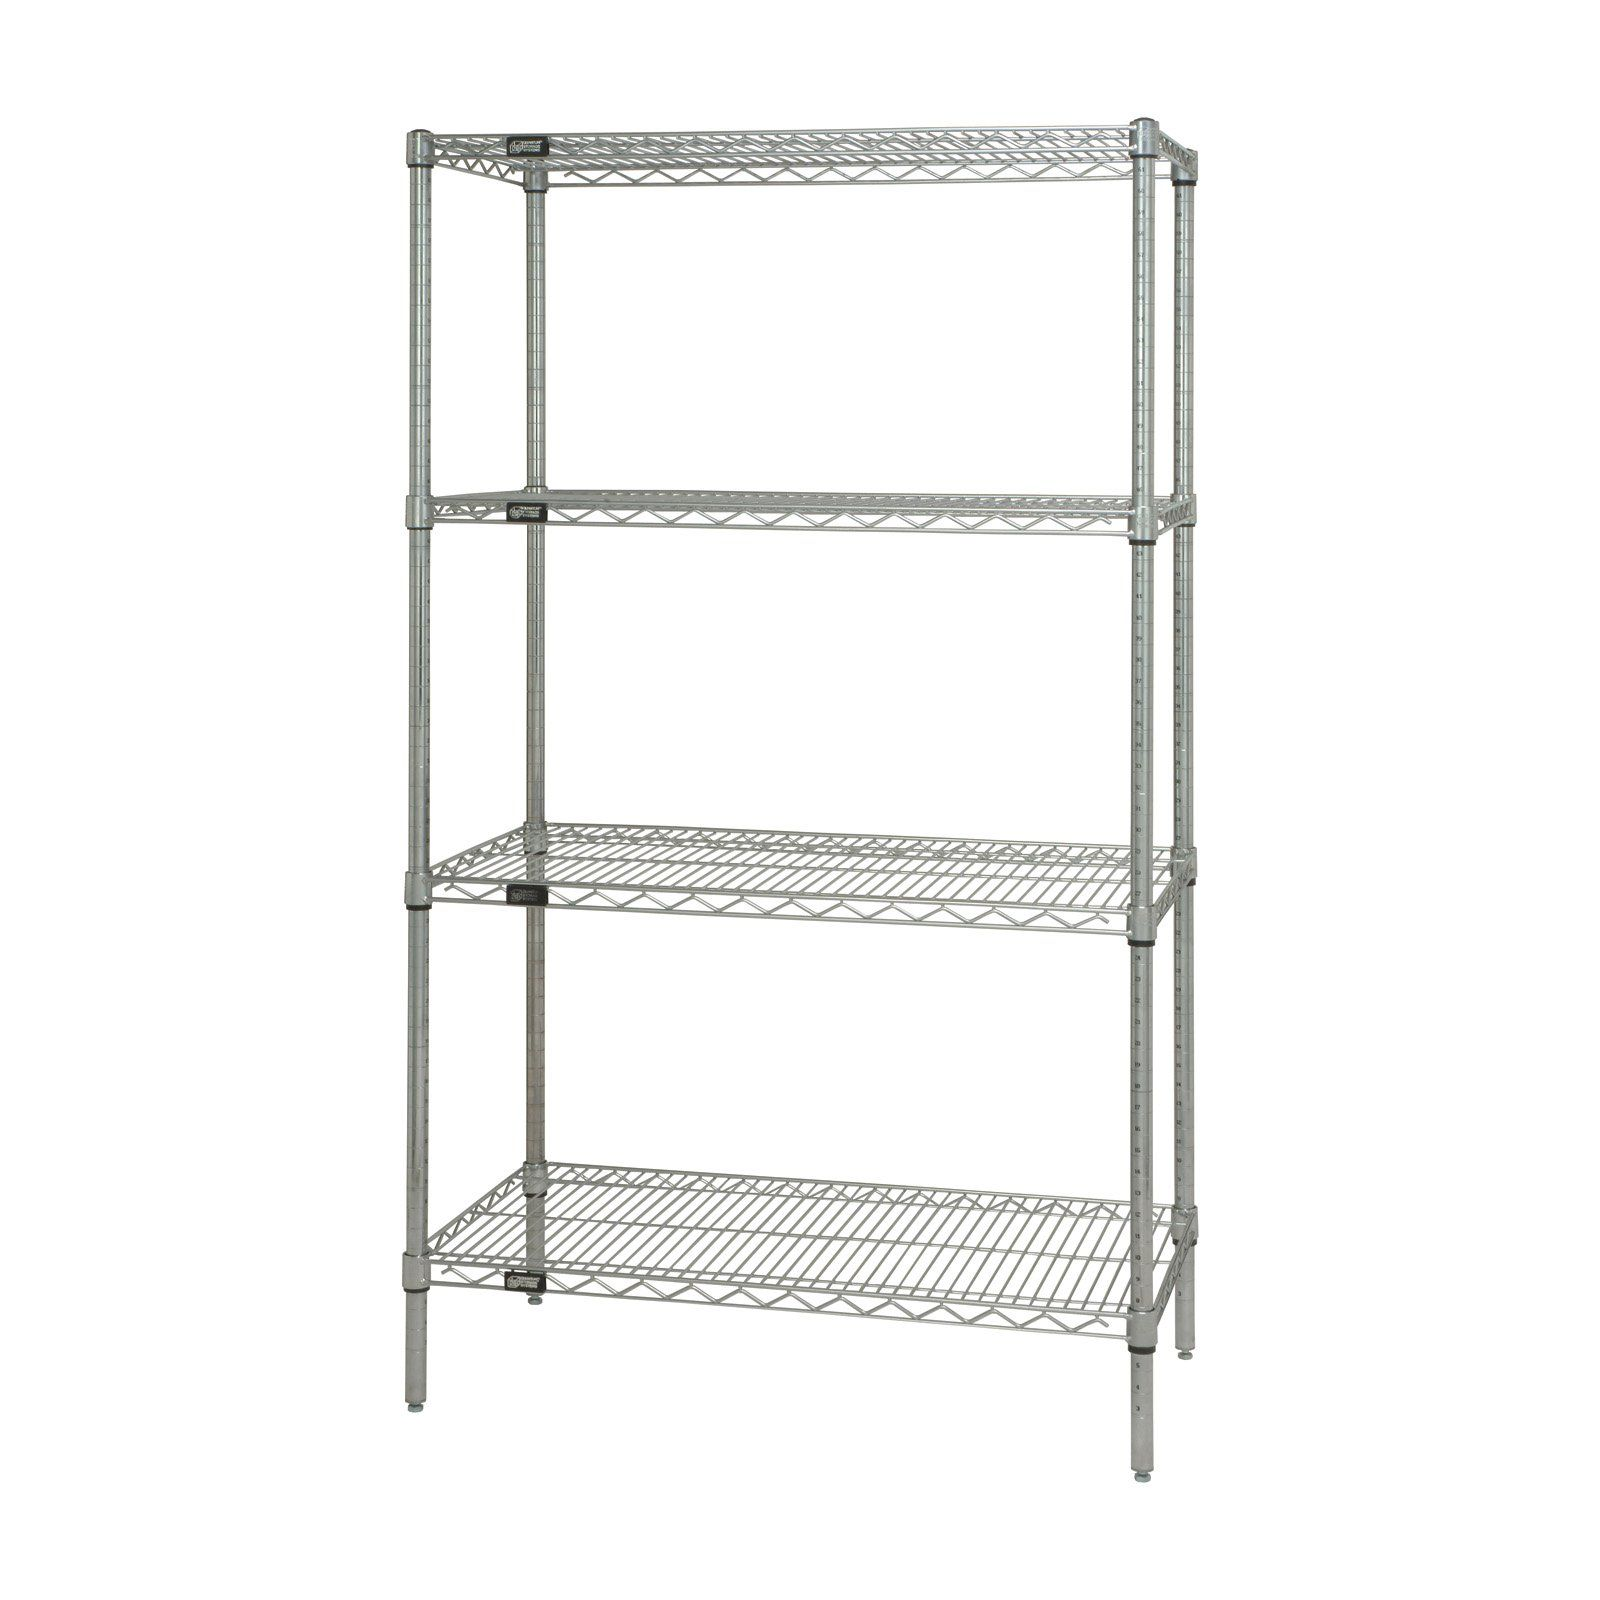 Quantum 36 in. Chrome Wire Shelving - WR63-1836C | Products ...